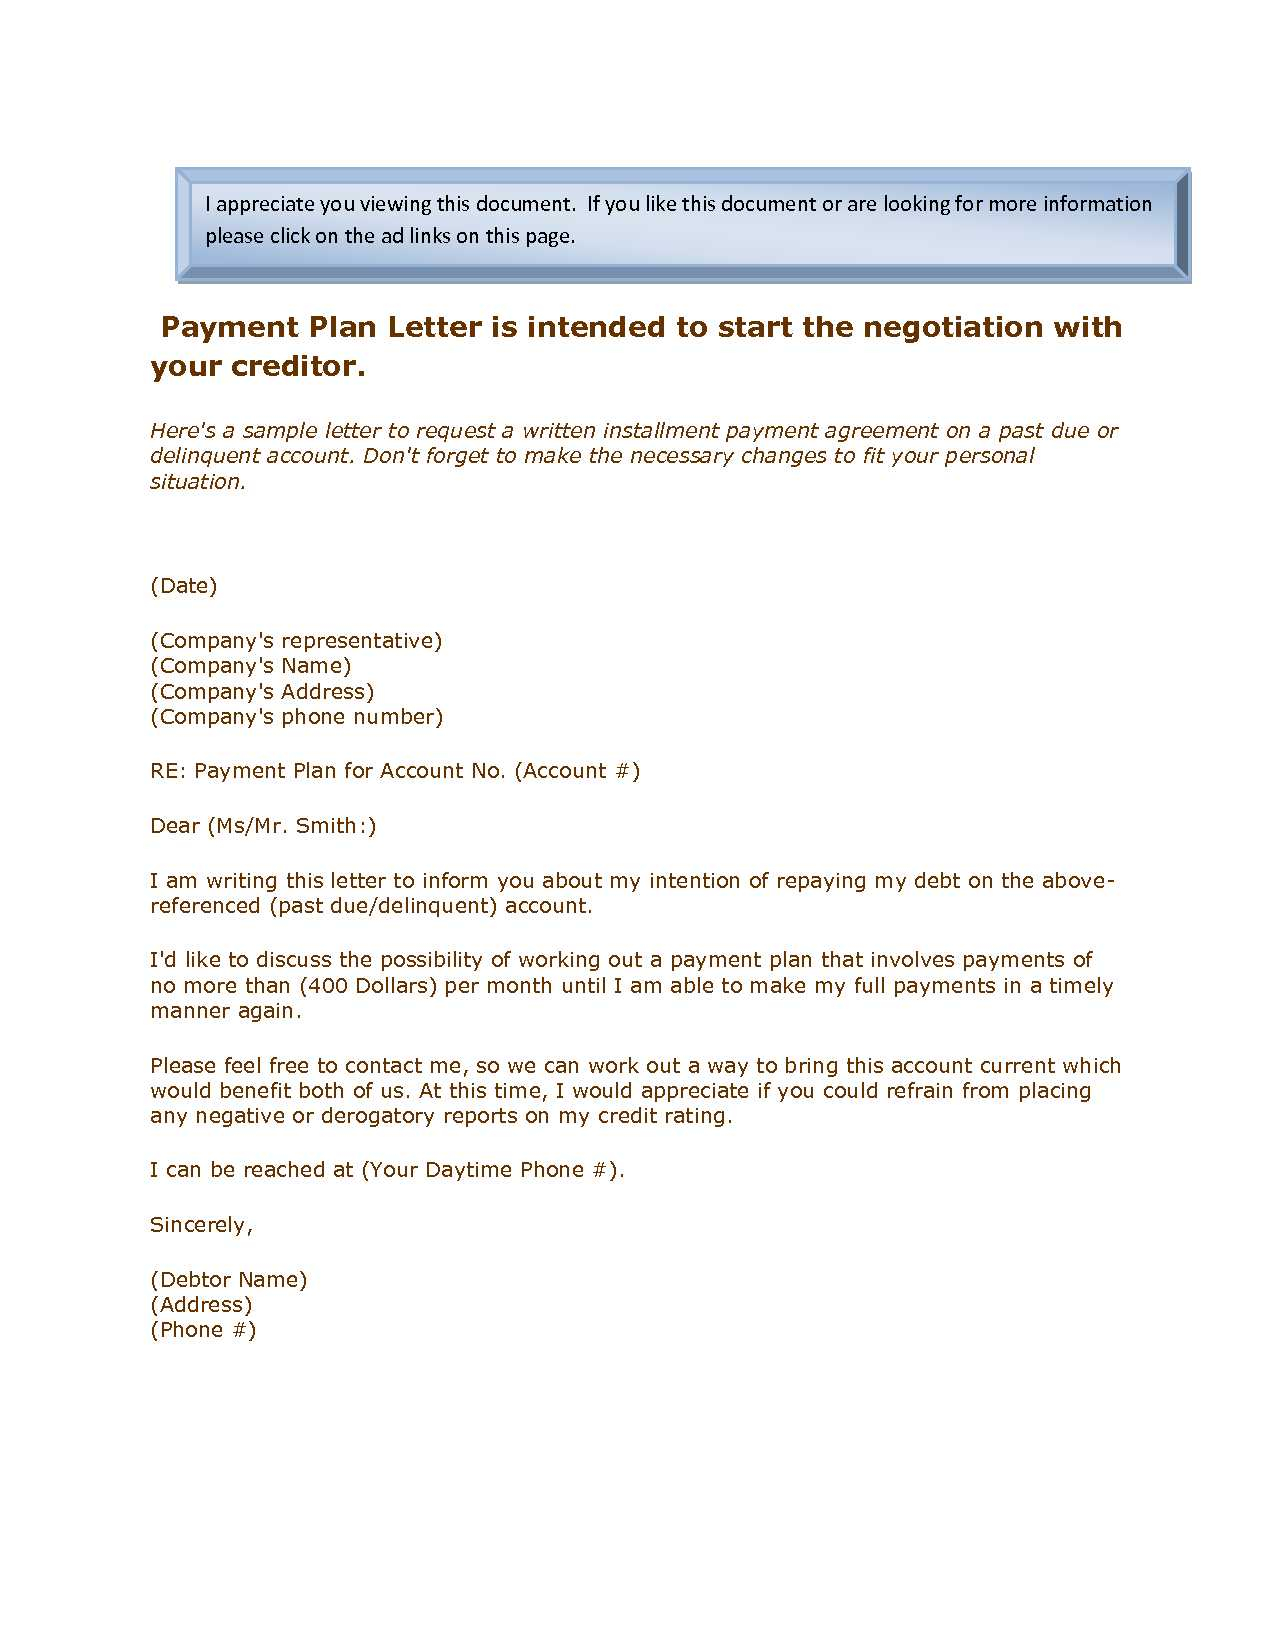 Installment Payment Agreement Letter Template - Installment Payment Agreement Template Beautiful 20 Inspirational